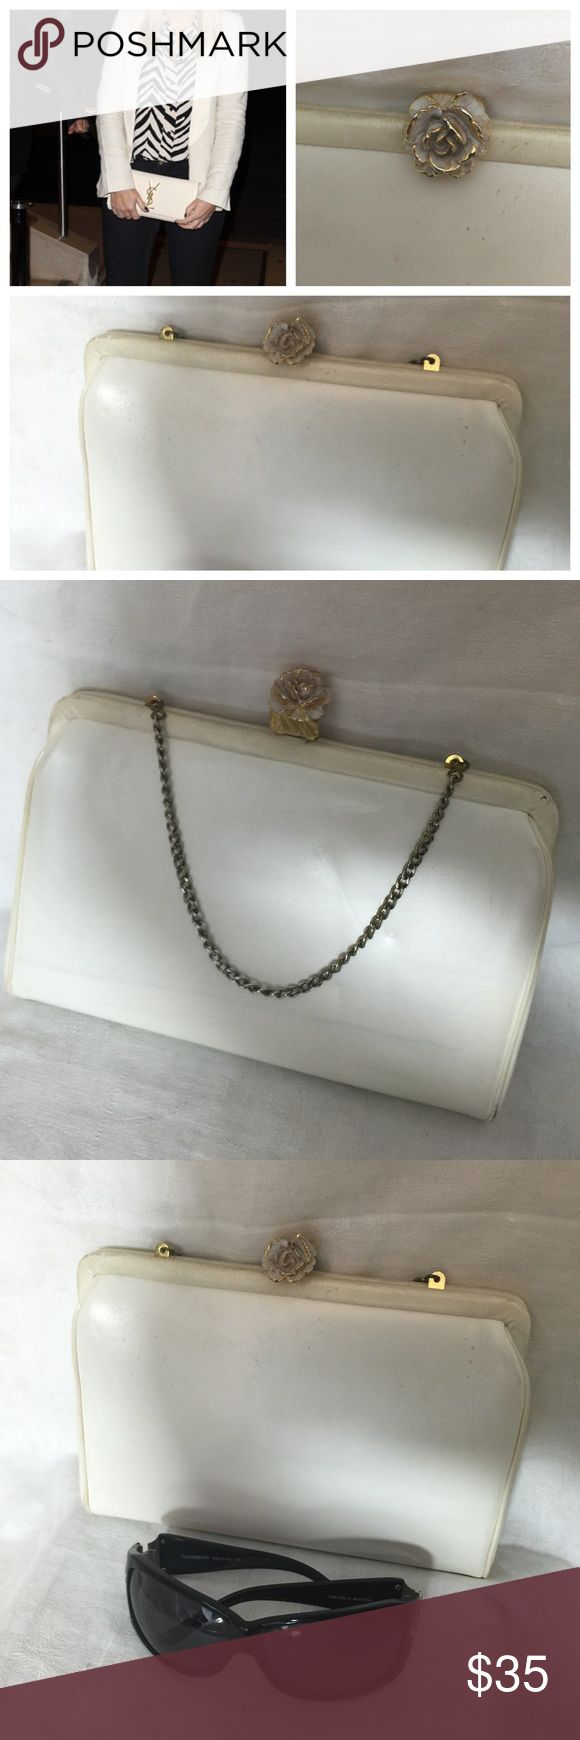 Vintage Rosette Kiss lock Cream Clutch Bag Vintage Rosette Kiss lock Cream Clutch Bag  with little chain strap that can be stored away. This bag is perfect for that vintage wedding dress or to finish off that holiday look. Glasses are for size comparison. Has designer mark inside. Gold tone hardware. vintage Bags Clutches & Wristlets